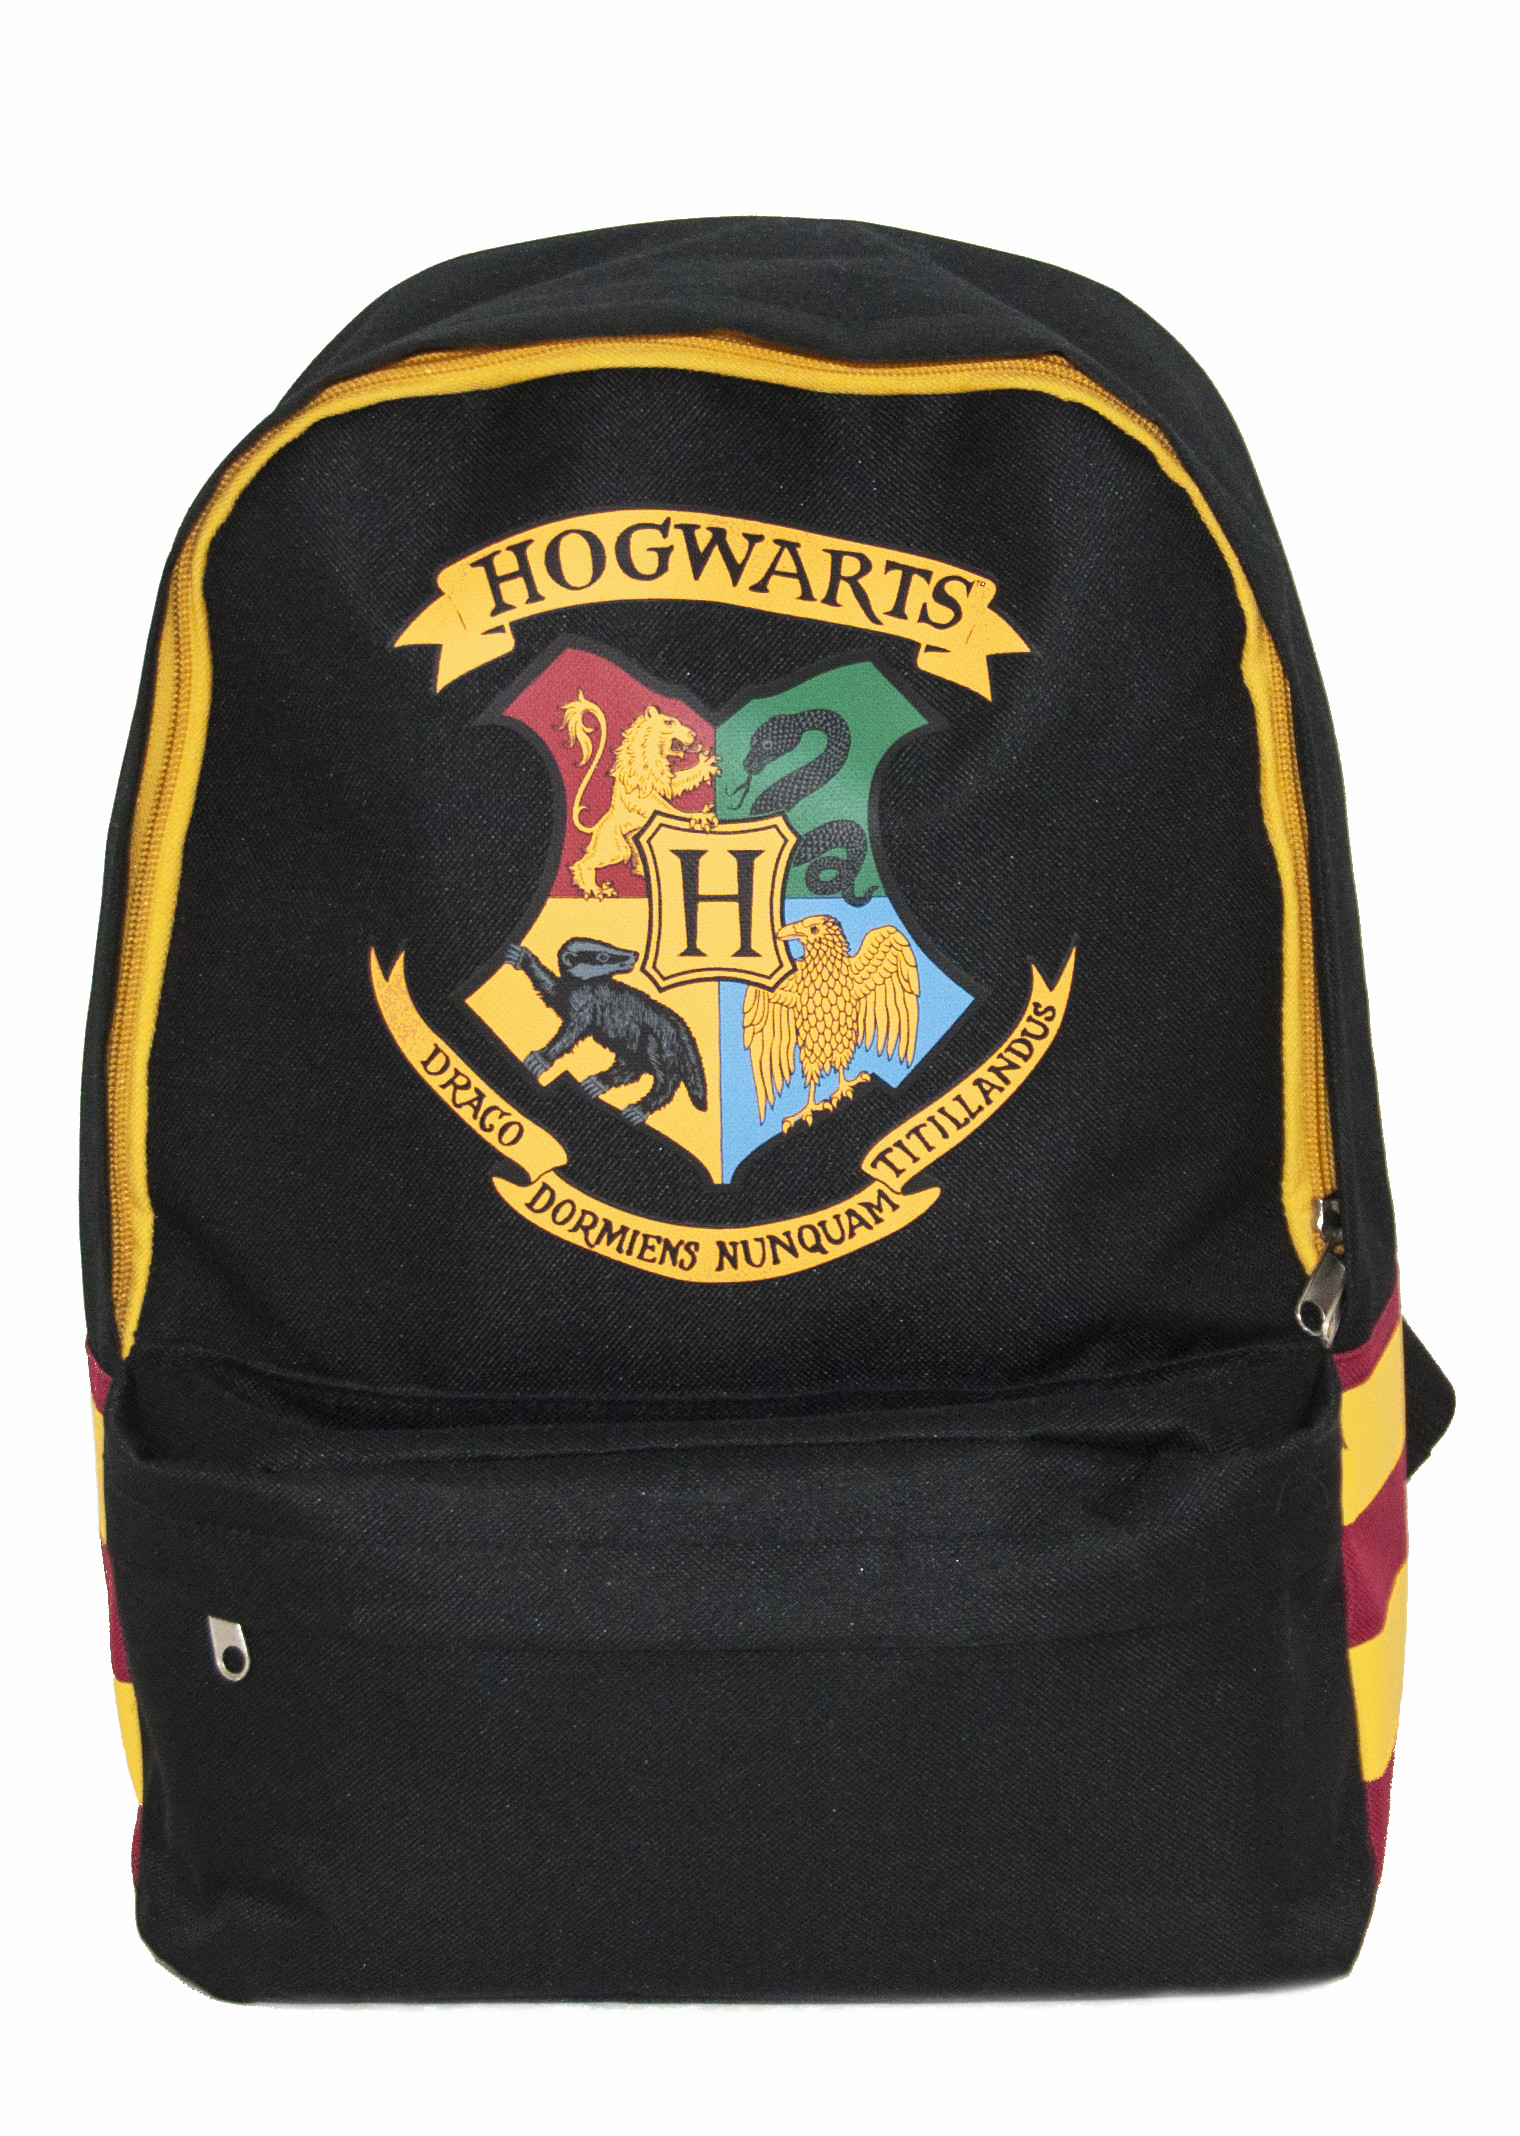 harry potter hogwarts backpack groovy uk. Black Bedroom Furniture Sets. Home Design Ideas